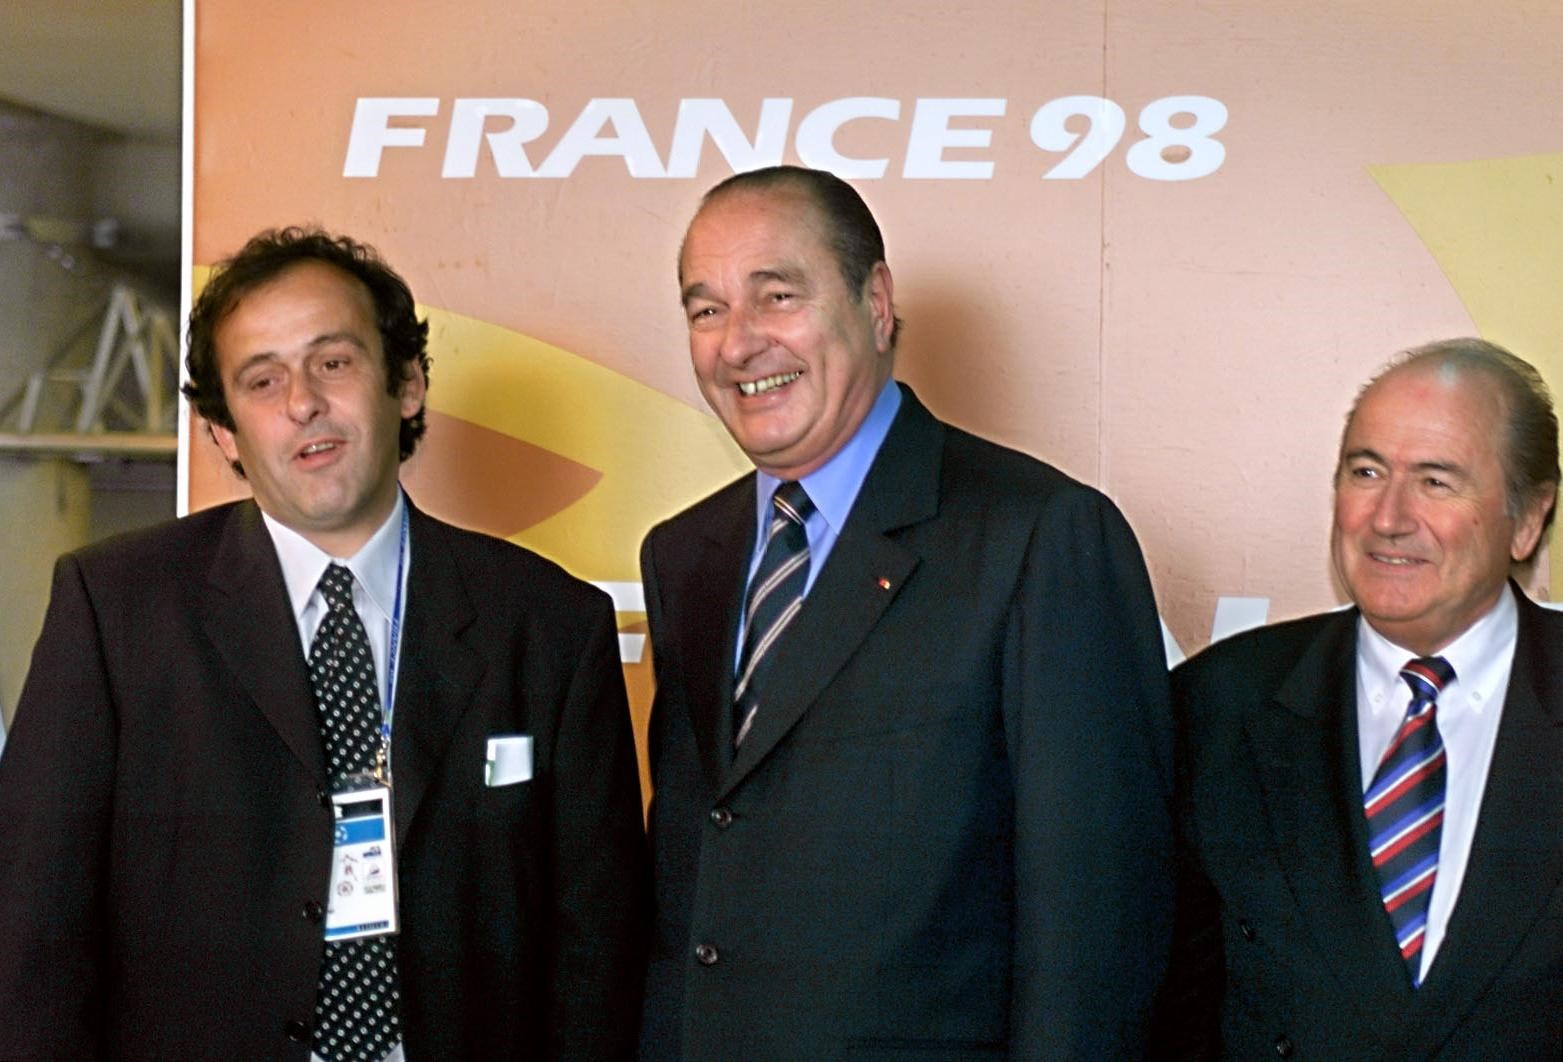 France 1998 World Cup final was FIXED ----- Michel Platini